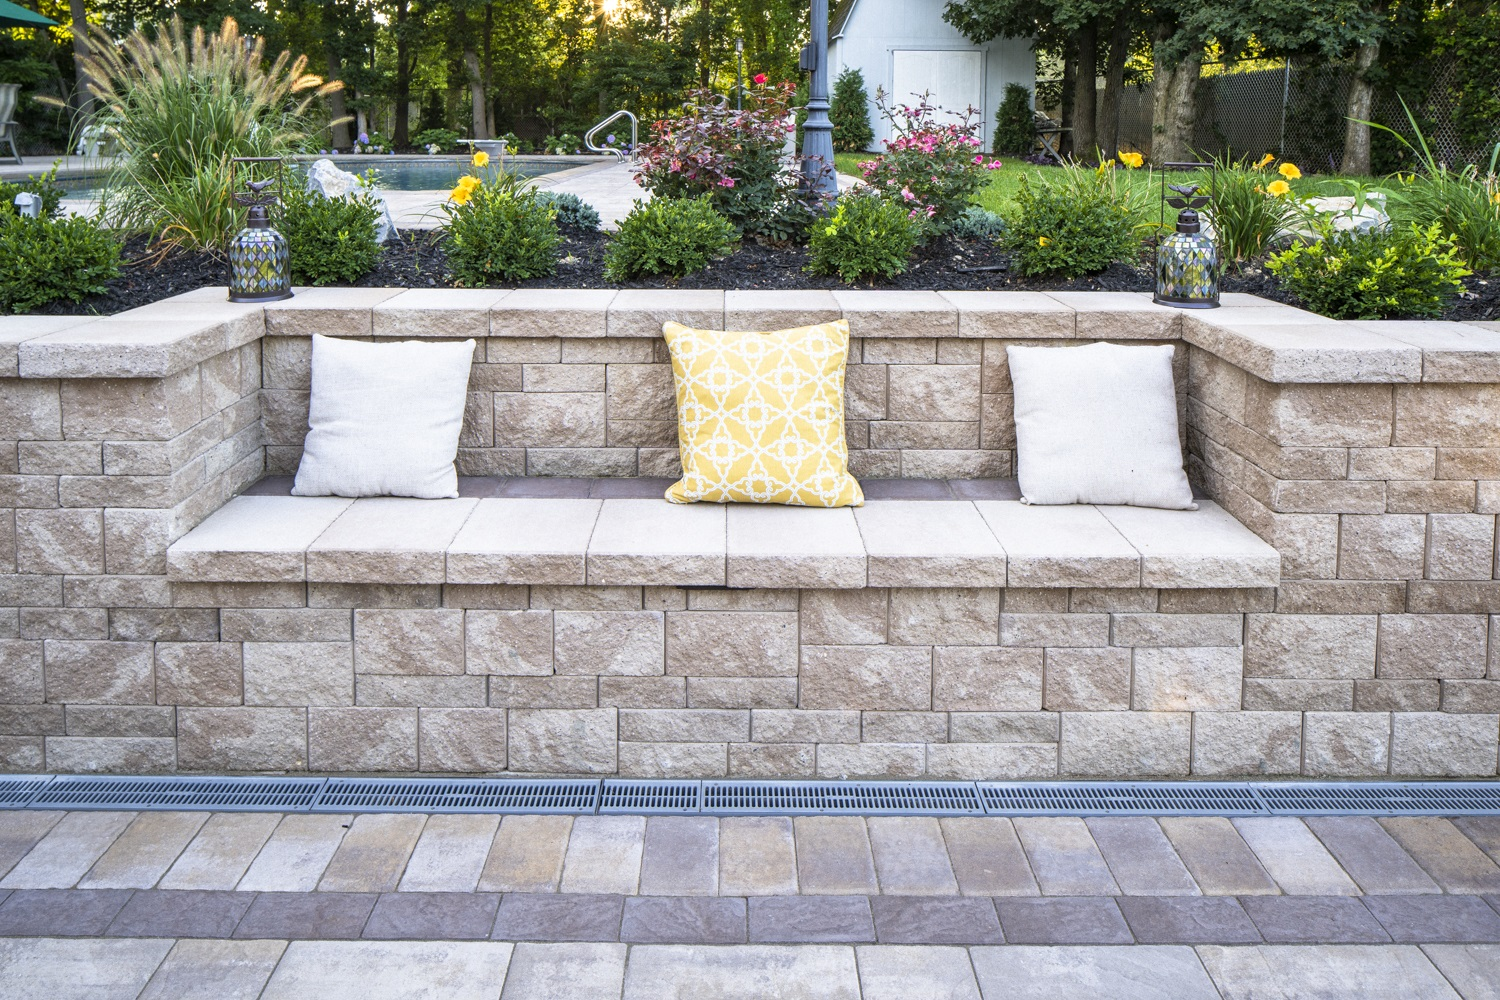 Stunning landscape design in East Northport NY